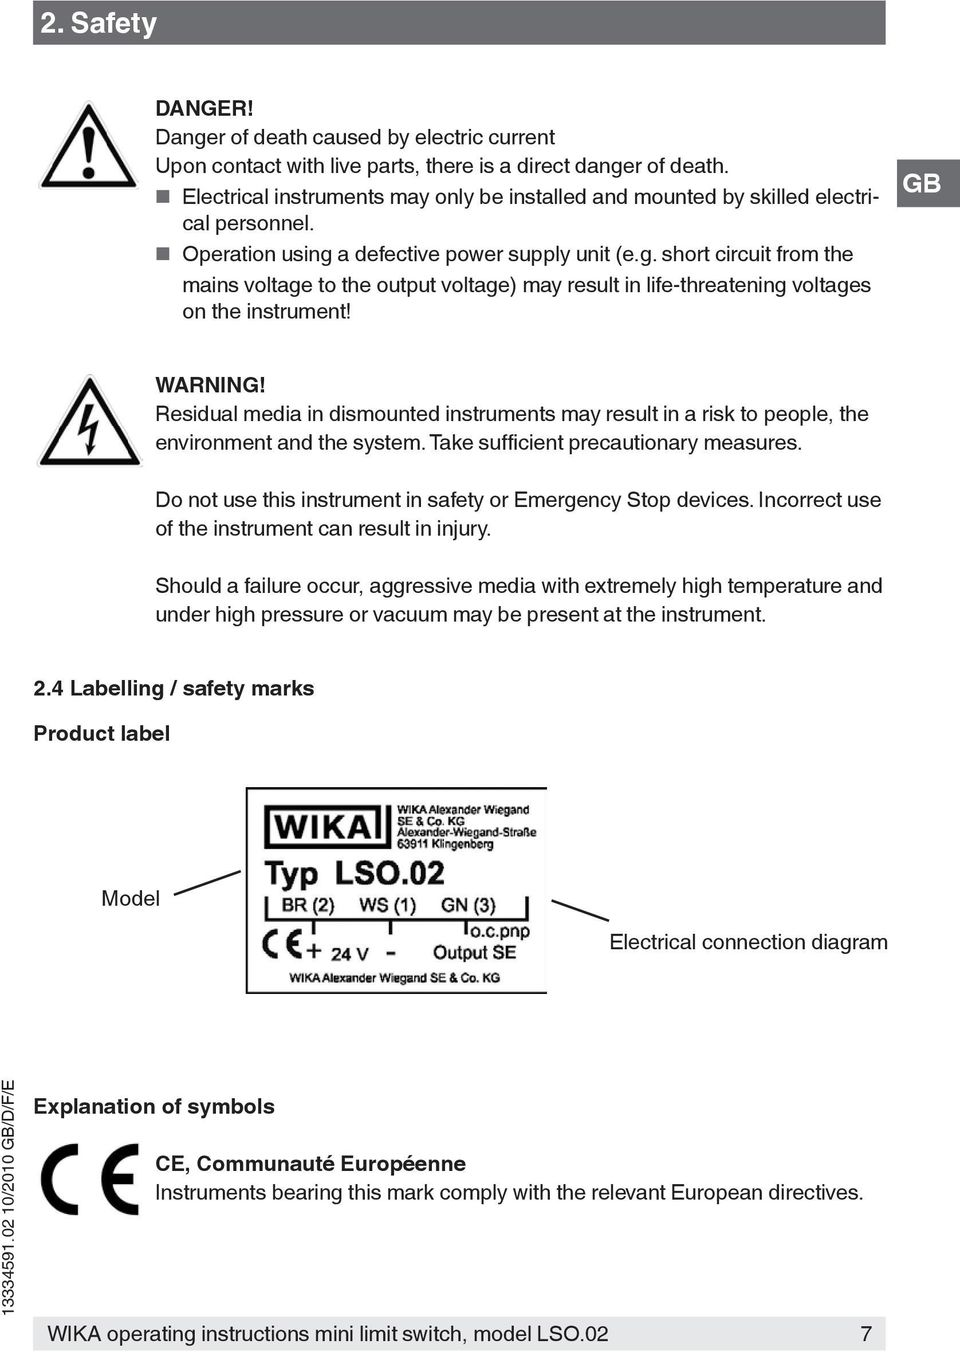 a defective power supply unit (e.g. short circuit from the mains voltage to the output voltage) may result in life-threatening voltages on the instrument! GB WARNING!